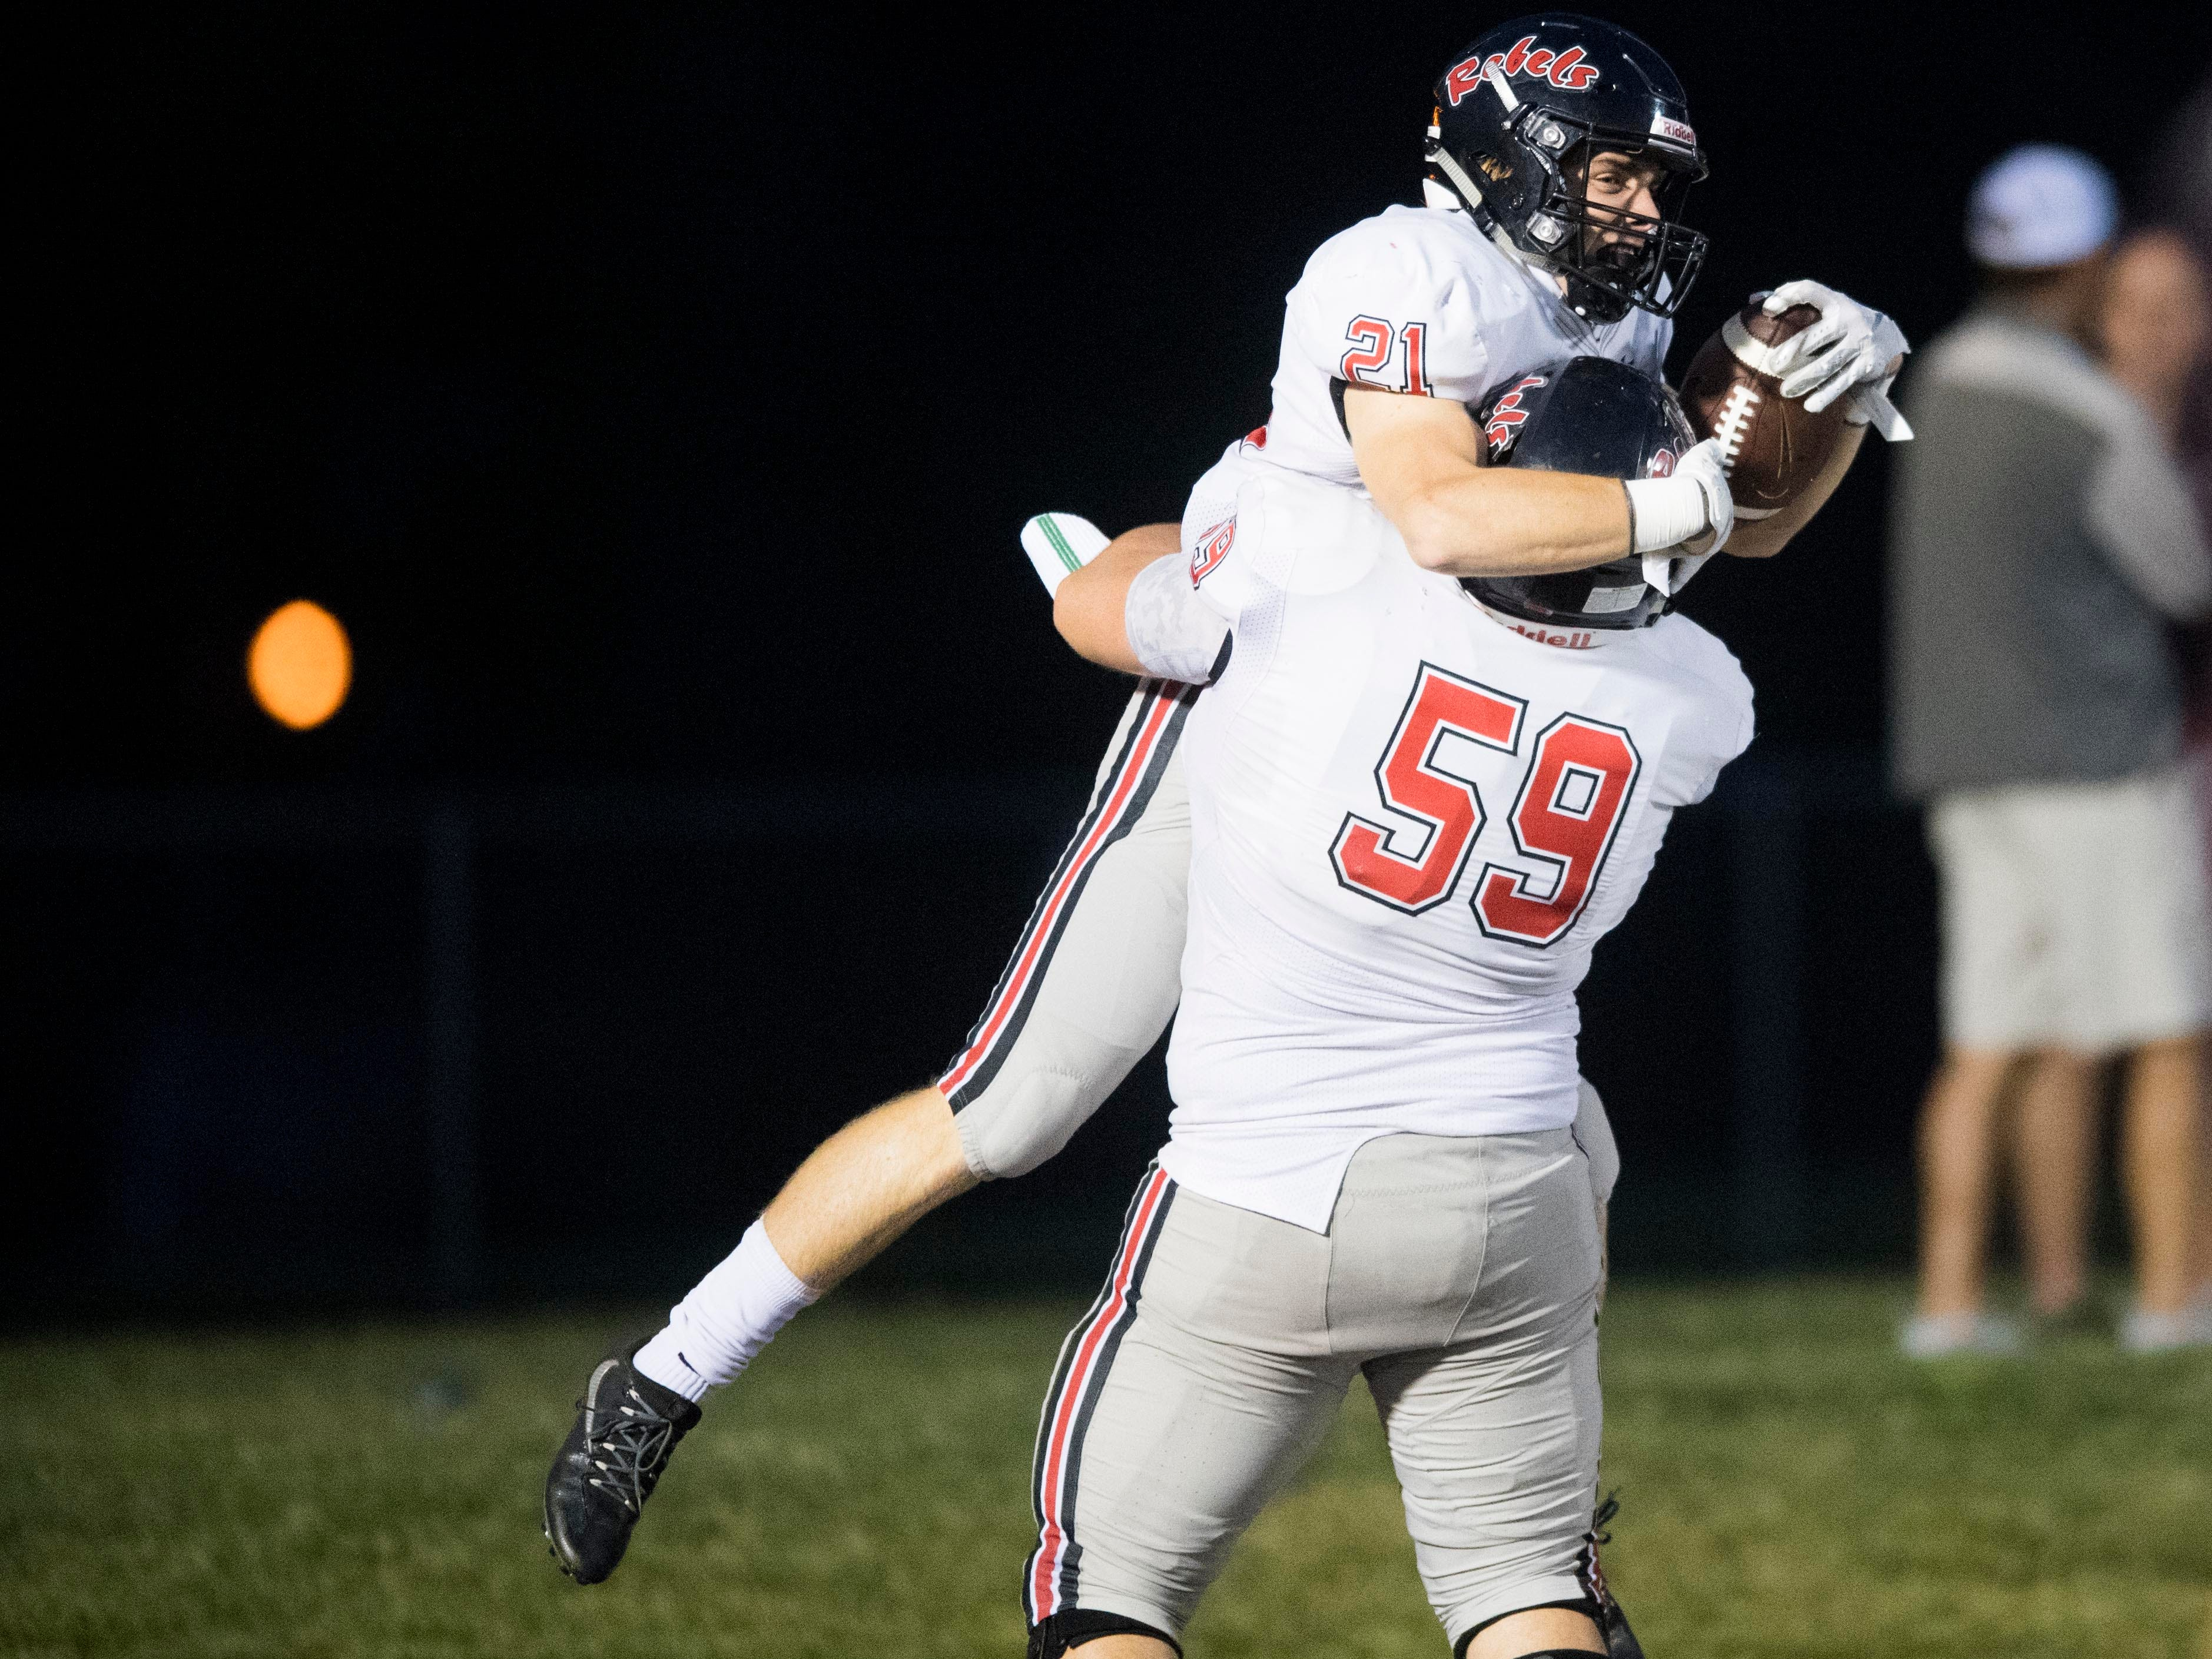 Maryville's Bryson Teffeteller (21) and Jacob Barbee (59) celebrate after Teffeteller scored a touchdown in the football game against Fulton Maryville on Friday, September 21, 2018.